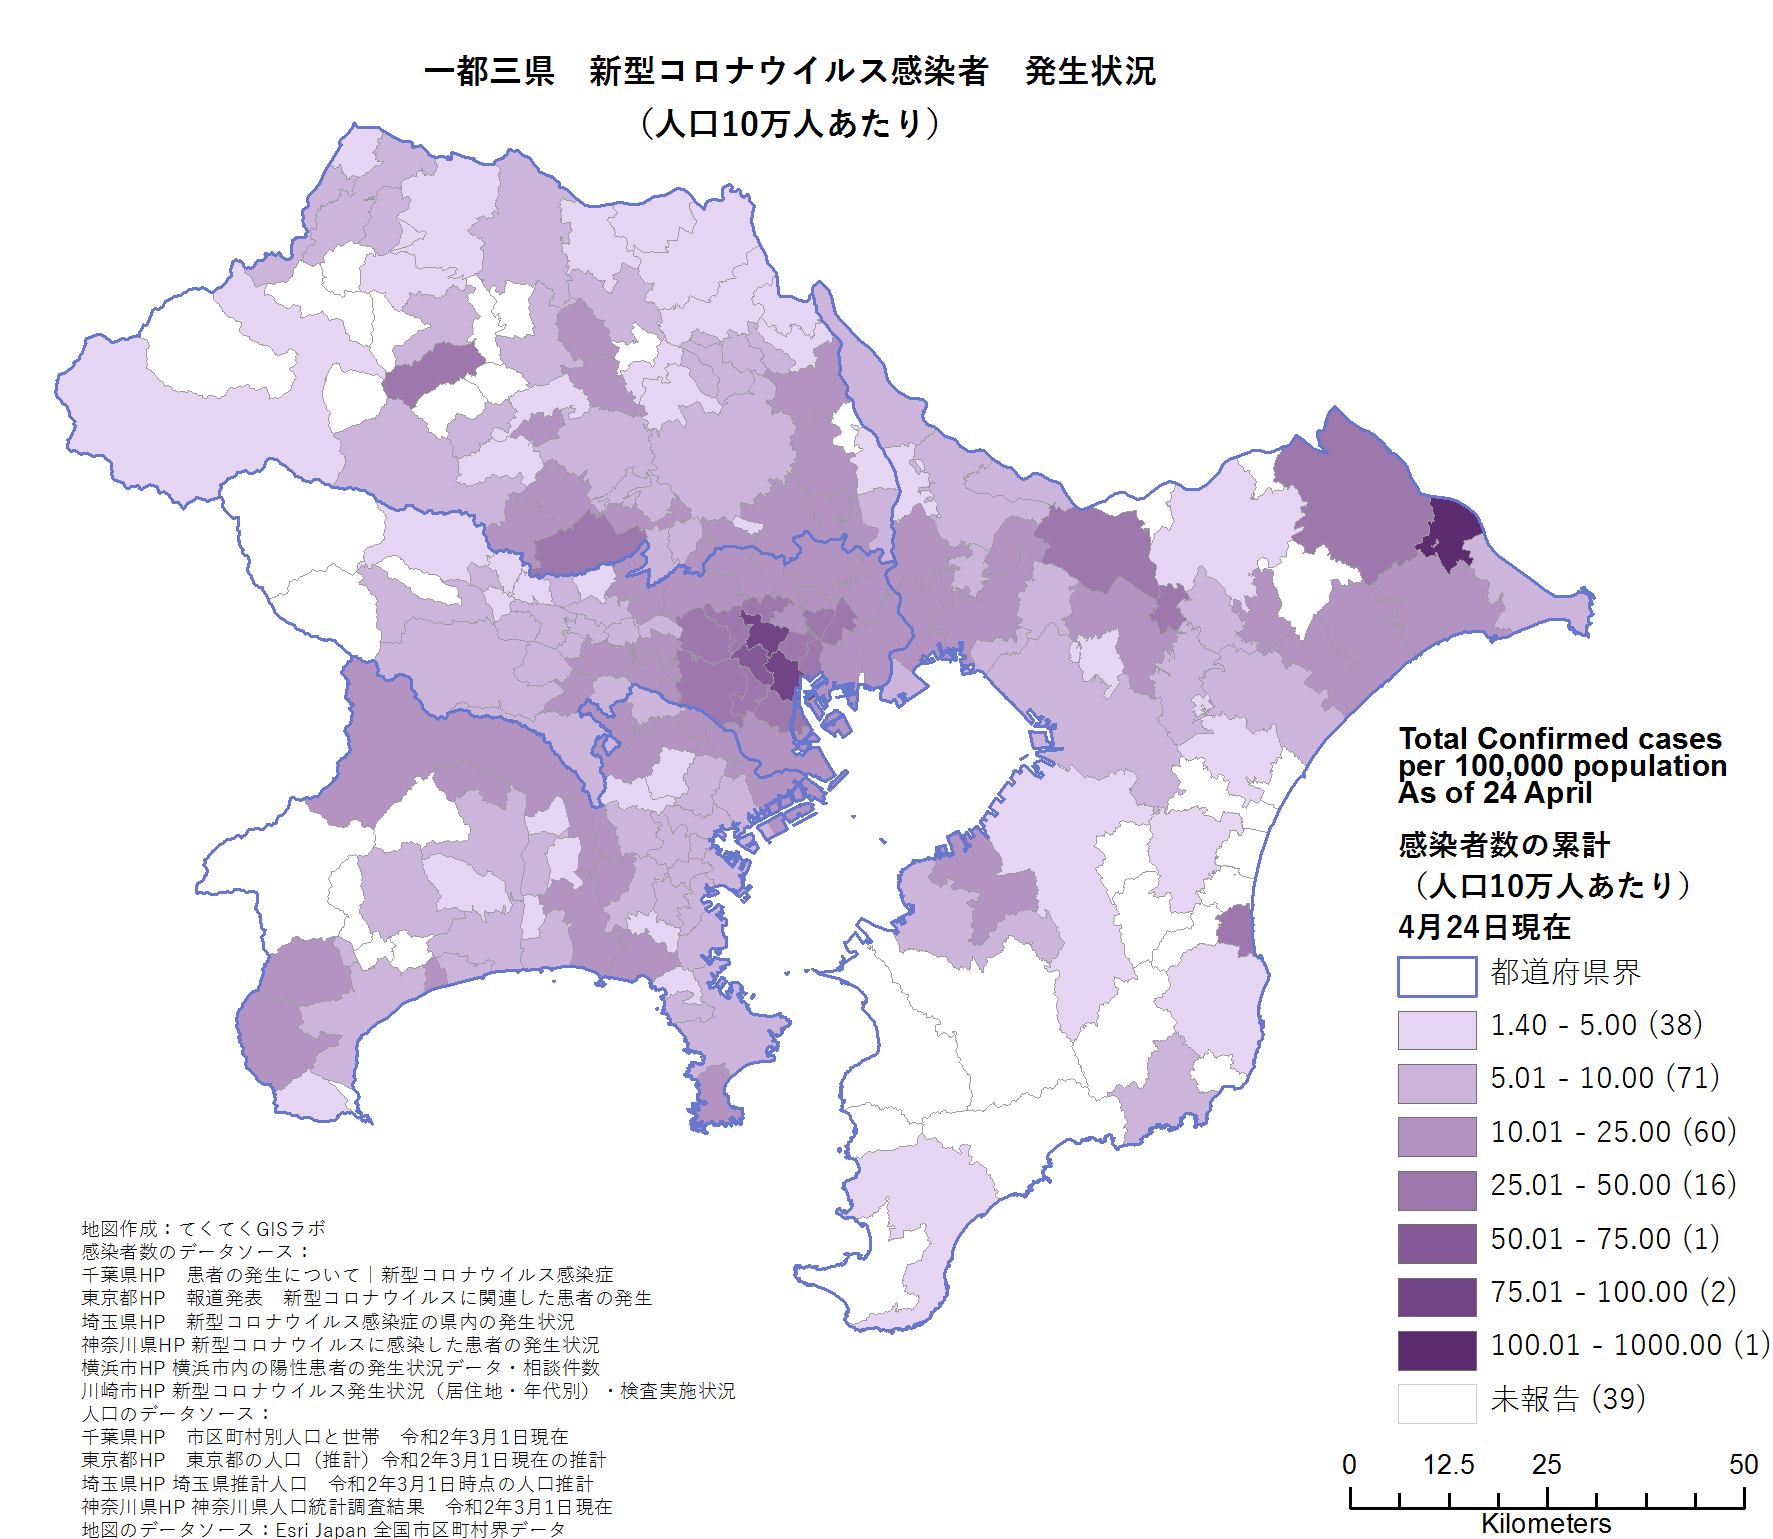 Number of cases around Tokyo